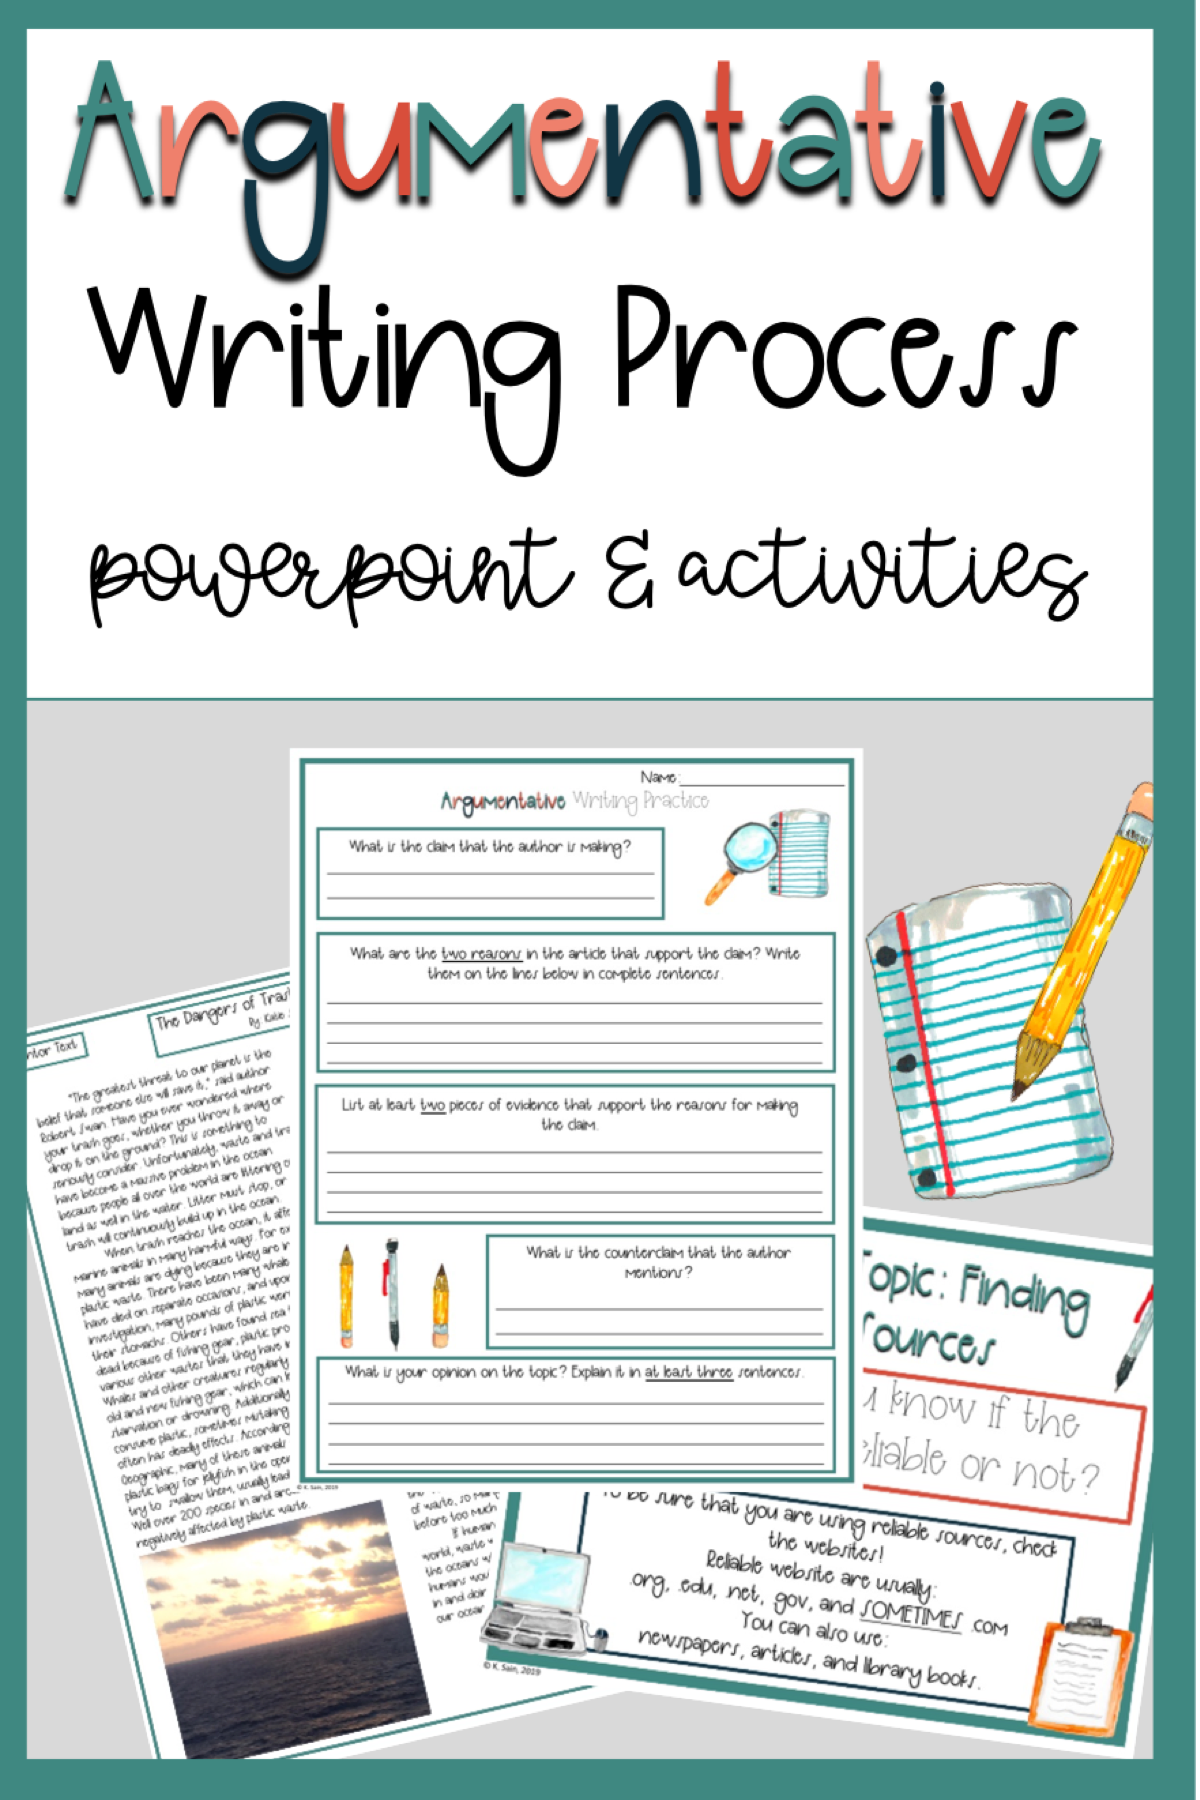 Argumentative Writing Process Powerpoint And Activities